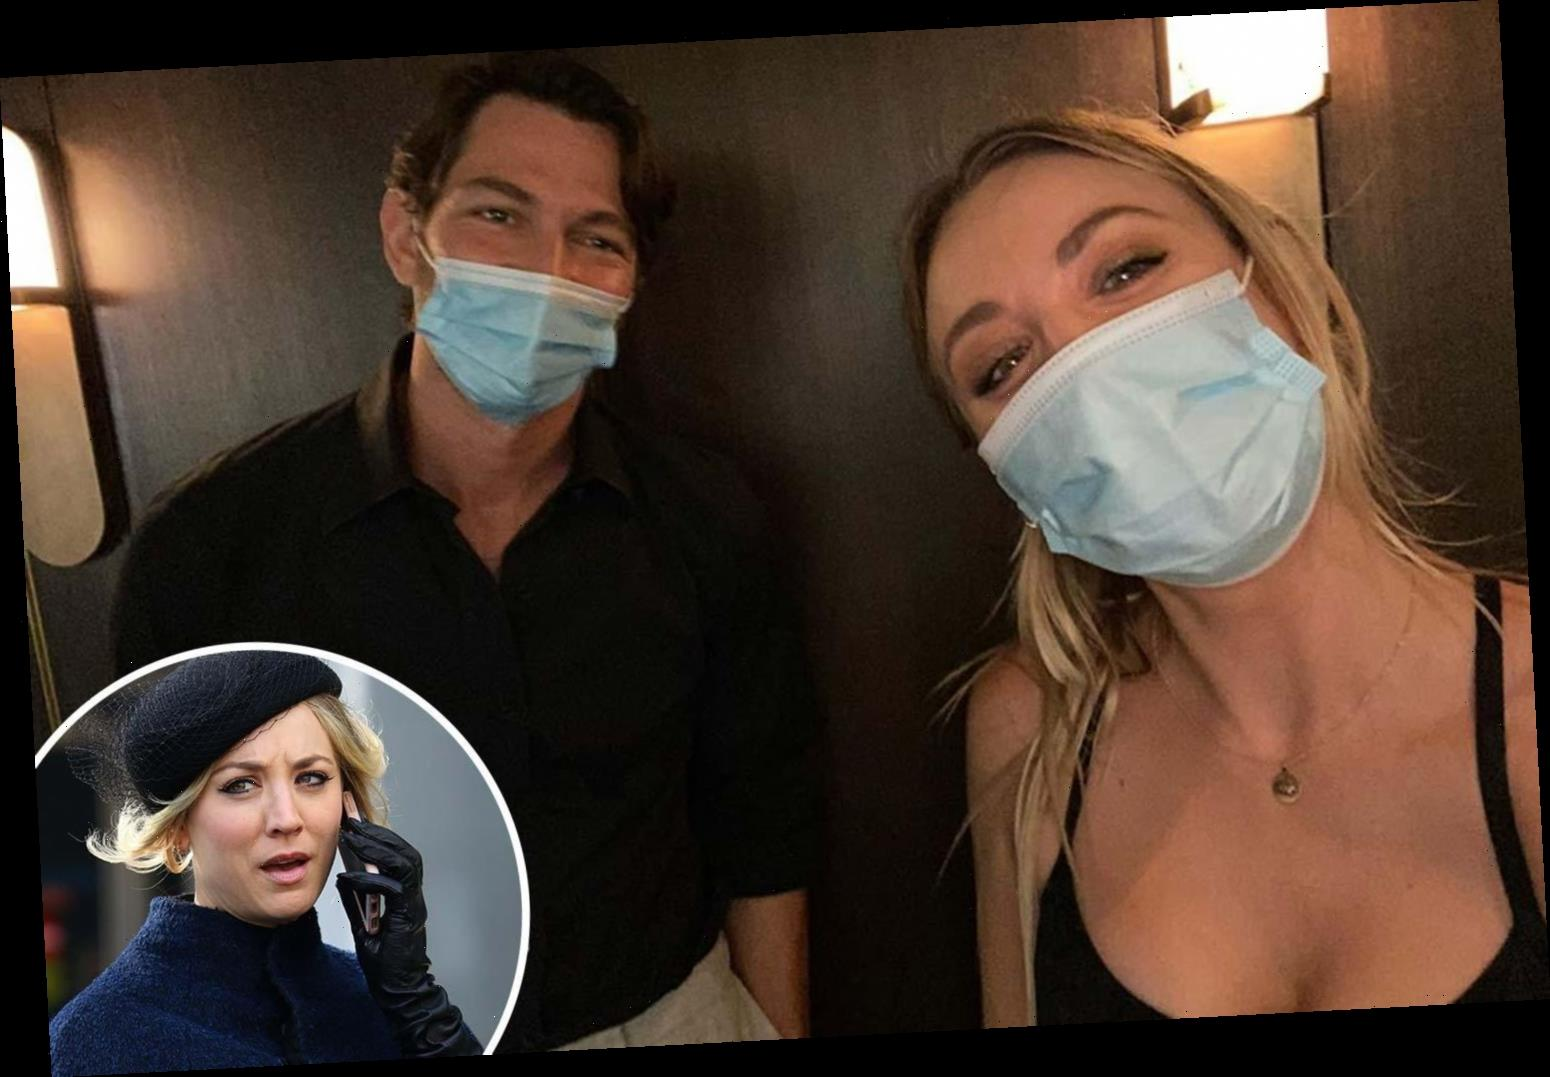 The Big Bang Theory's Kaley Cuoco thrills fans with behind-the-scenes pics as she returns to set of The Flight Attendant